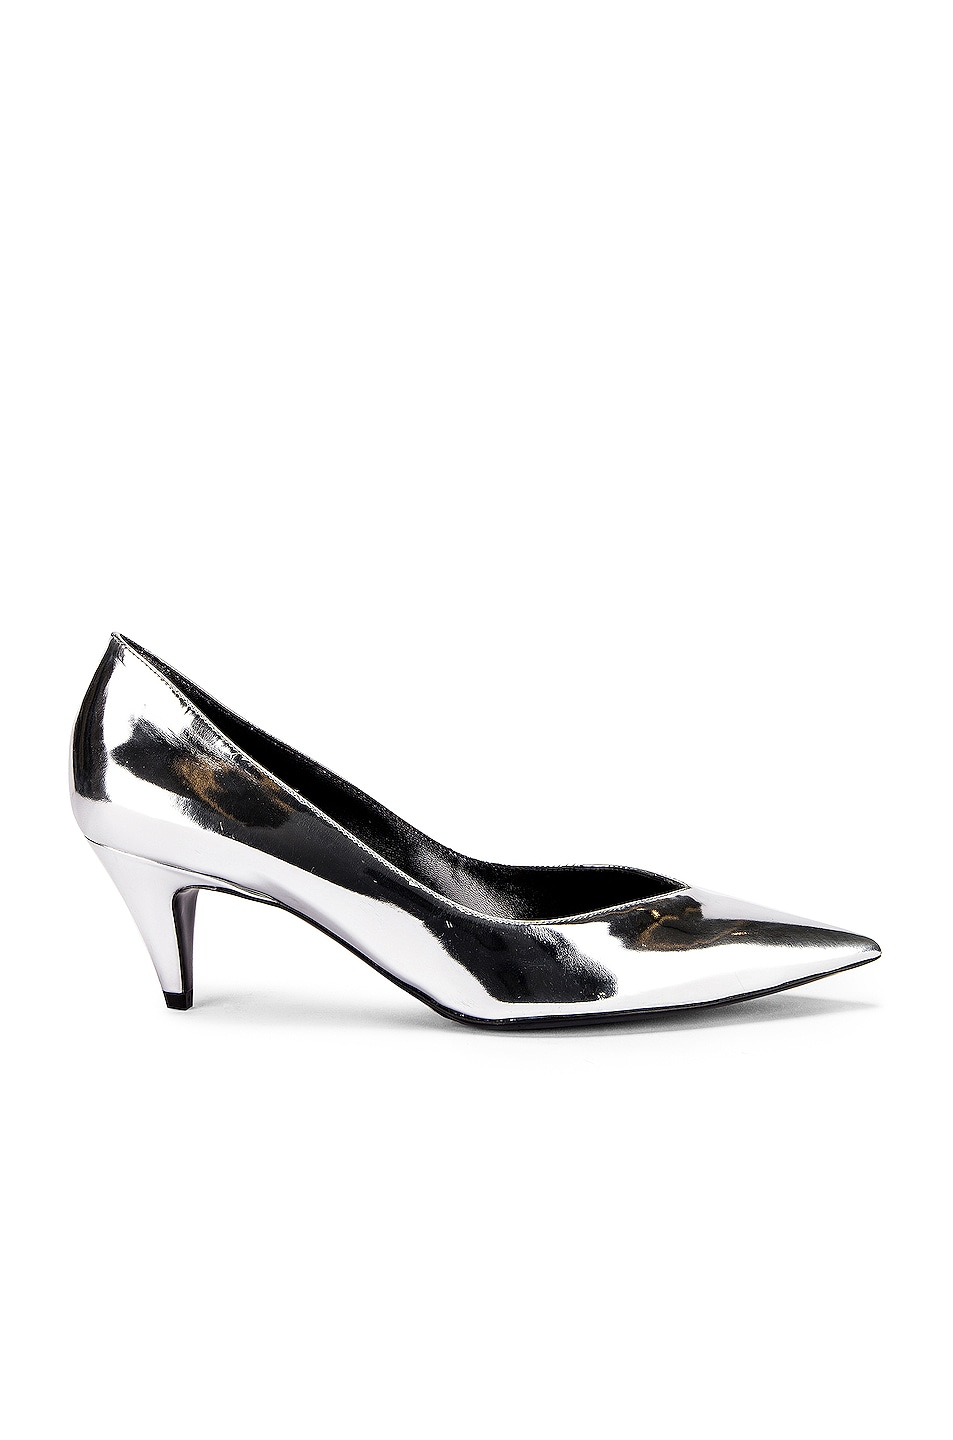 Image 1 of Saint Laurent Kiki Kitten Heels in Silver